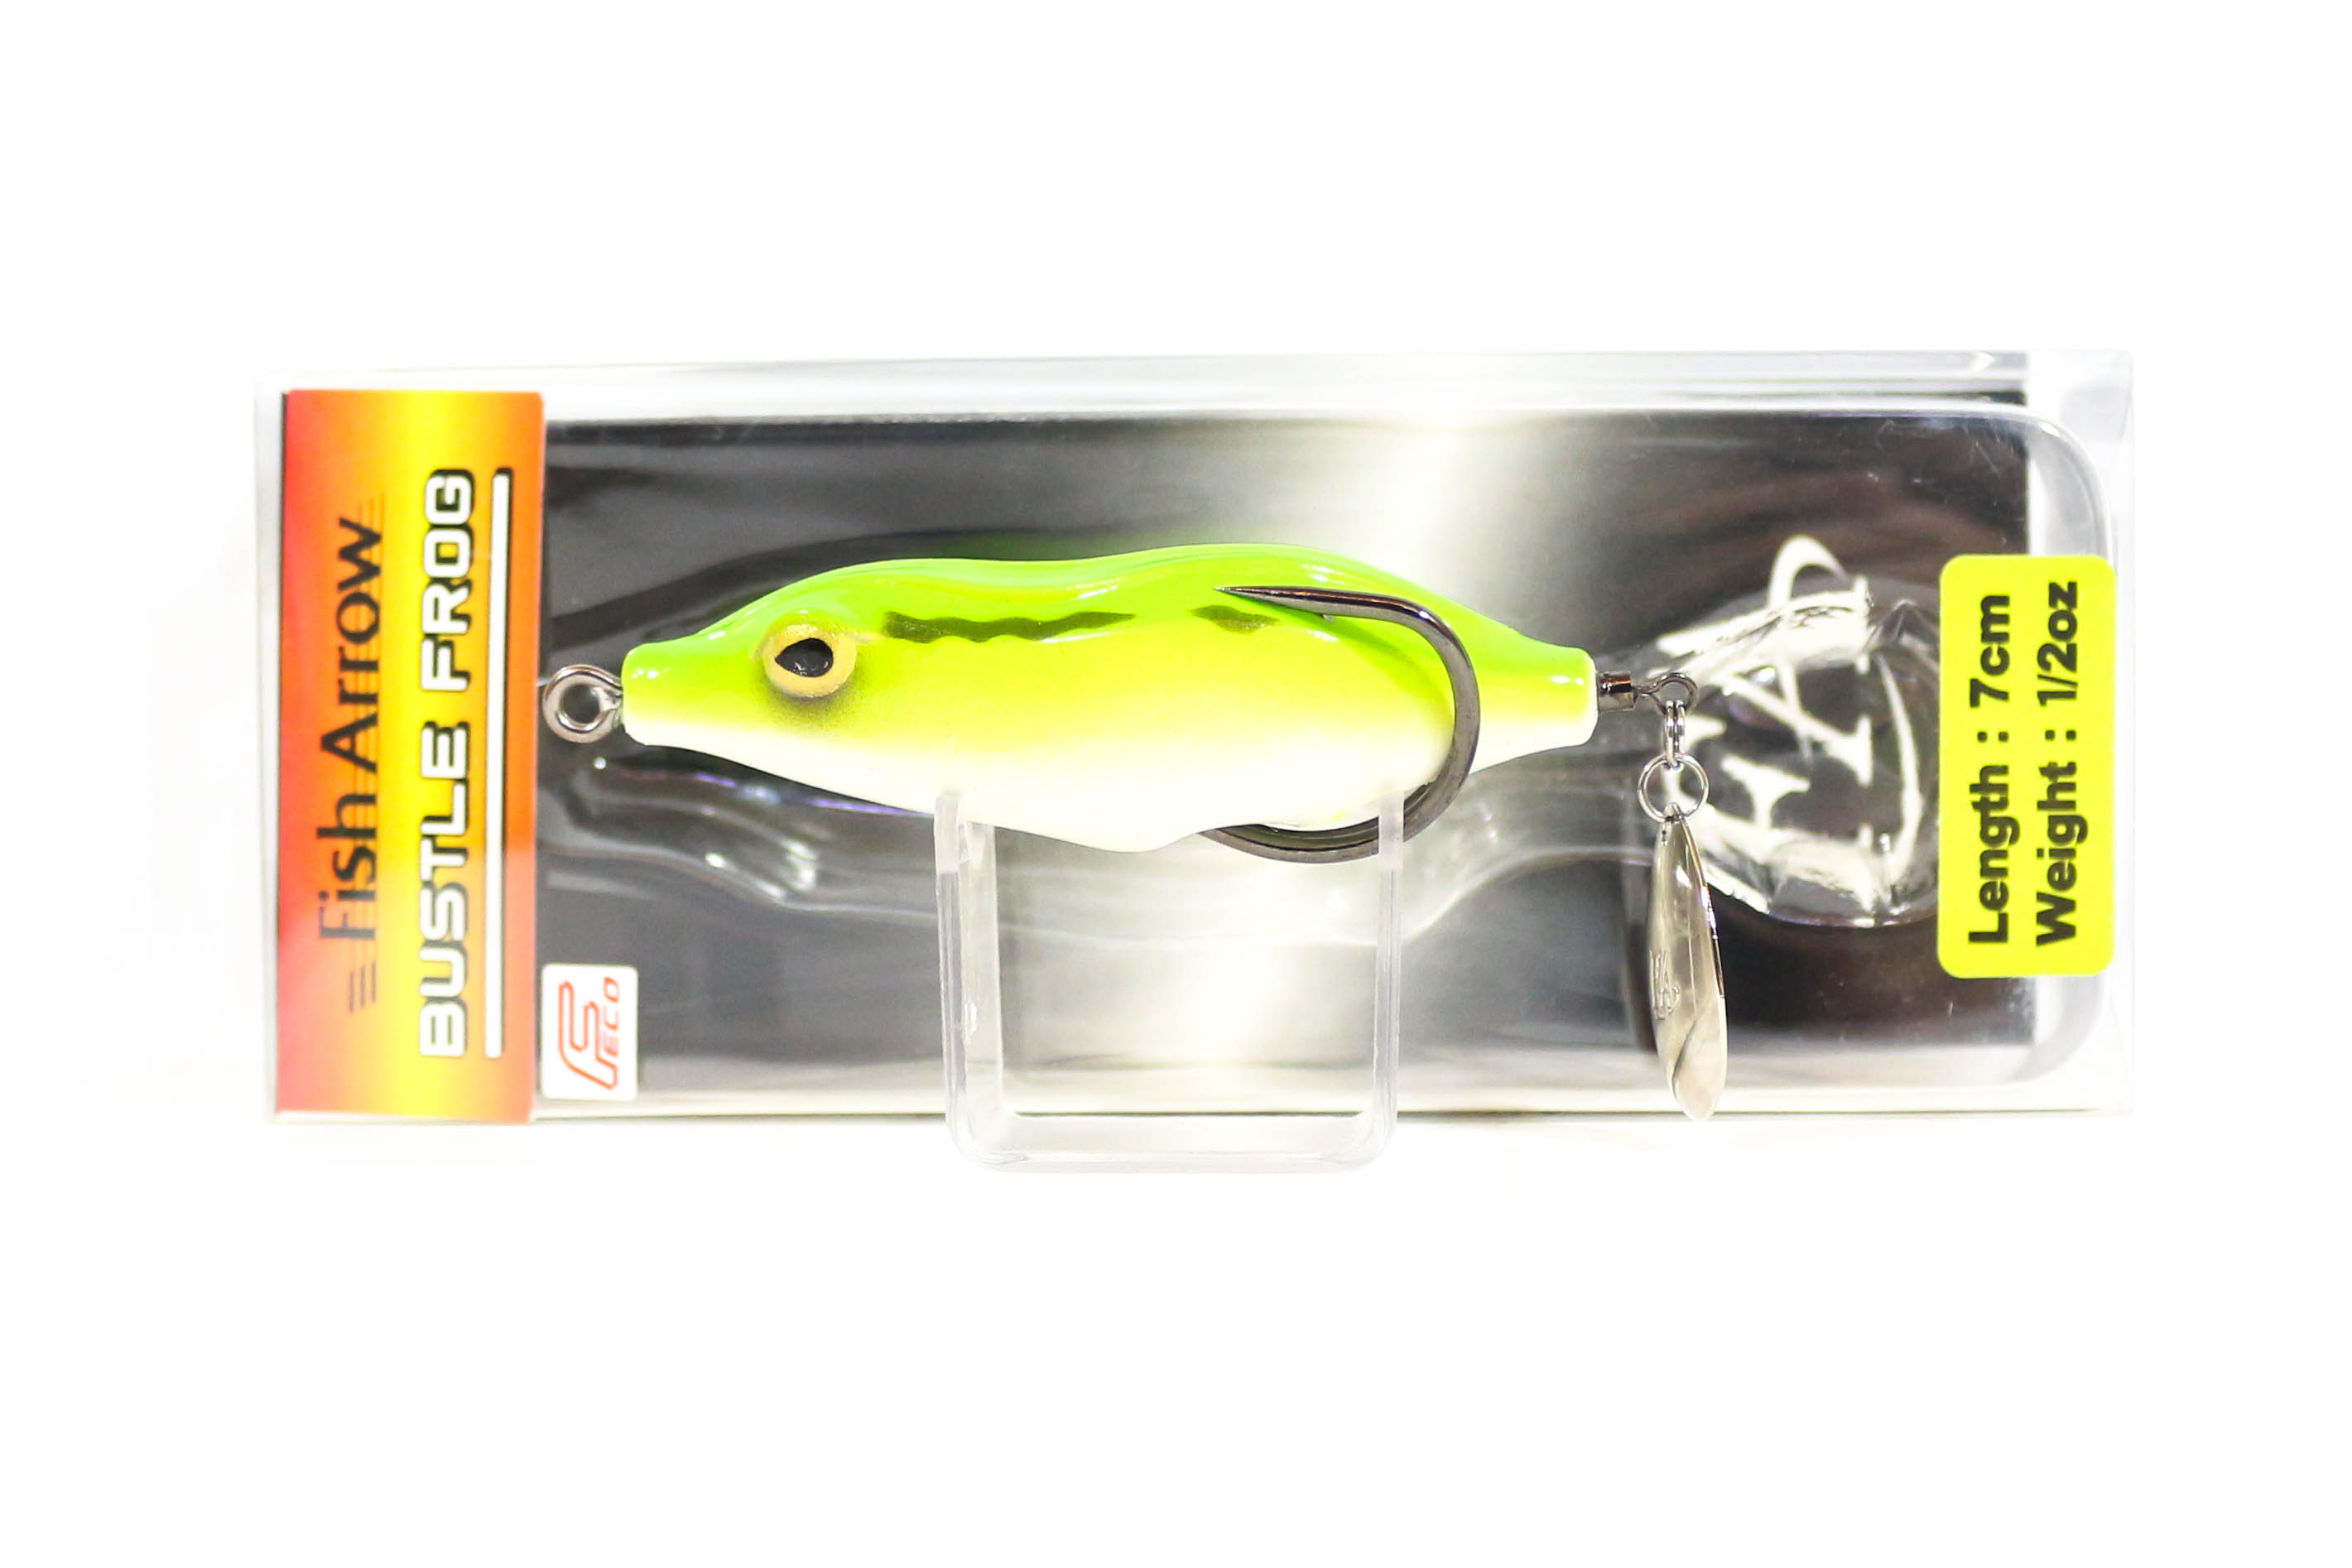 Fish Arrow Bustle Frog 7 cm 1/2 oz Soft Plastic Floating Lure 01 (4217)